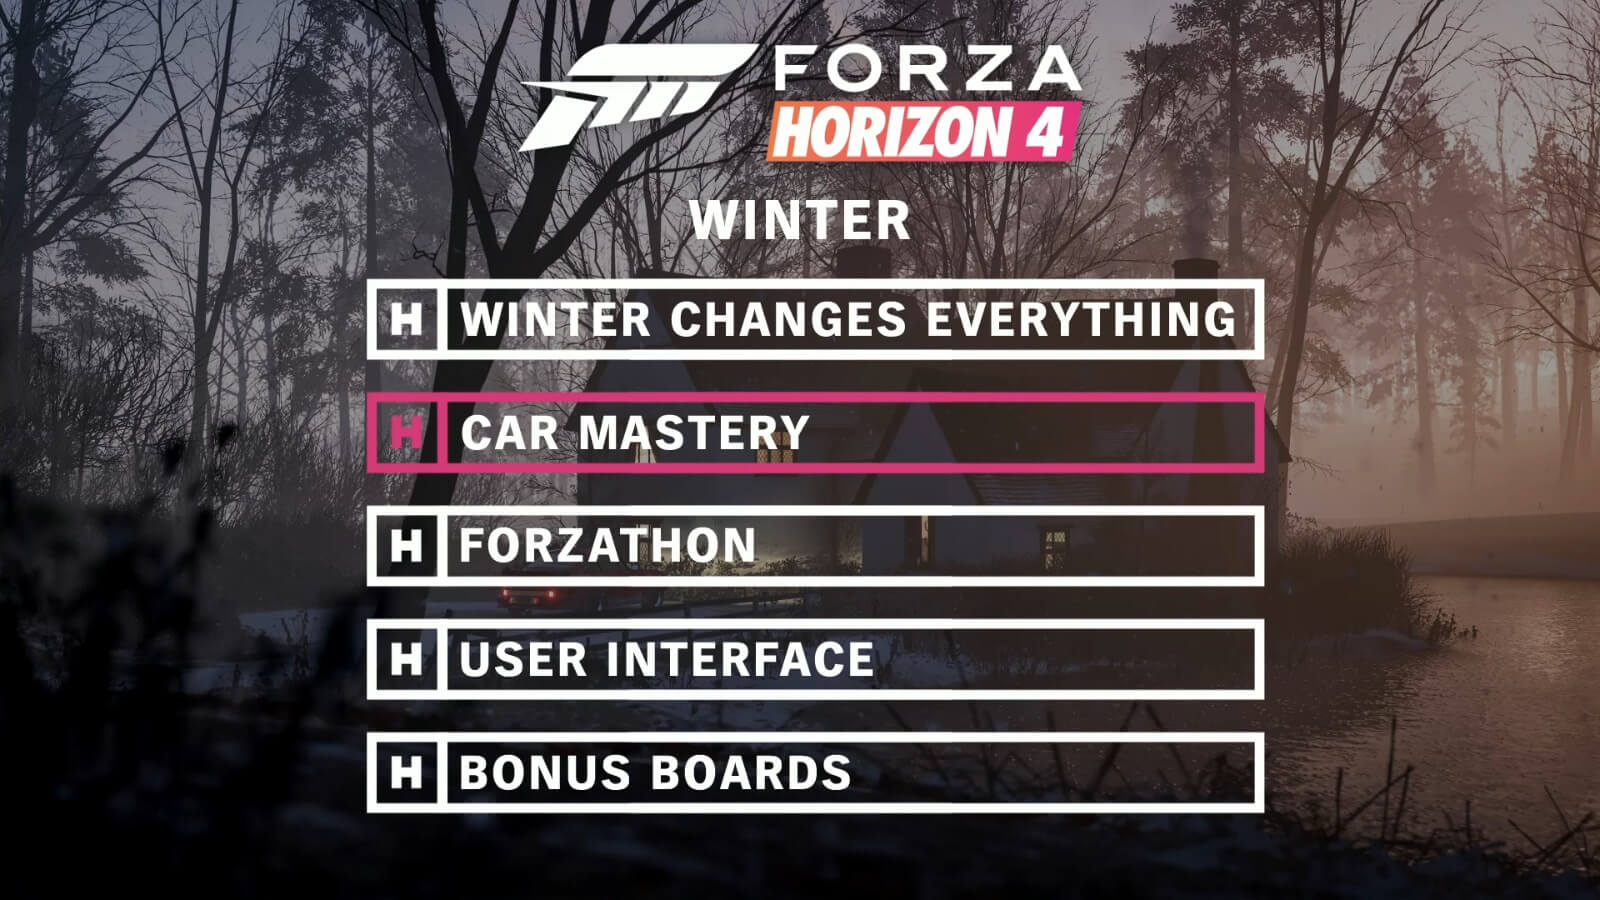 Winter Strikes Britain With Snow and Ice in Forza Horizon